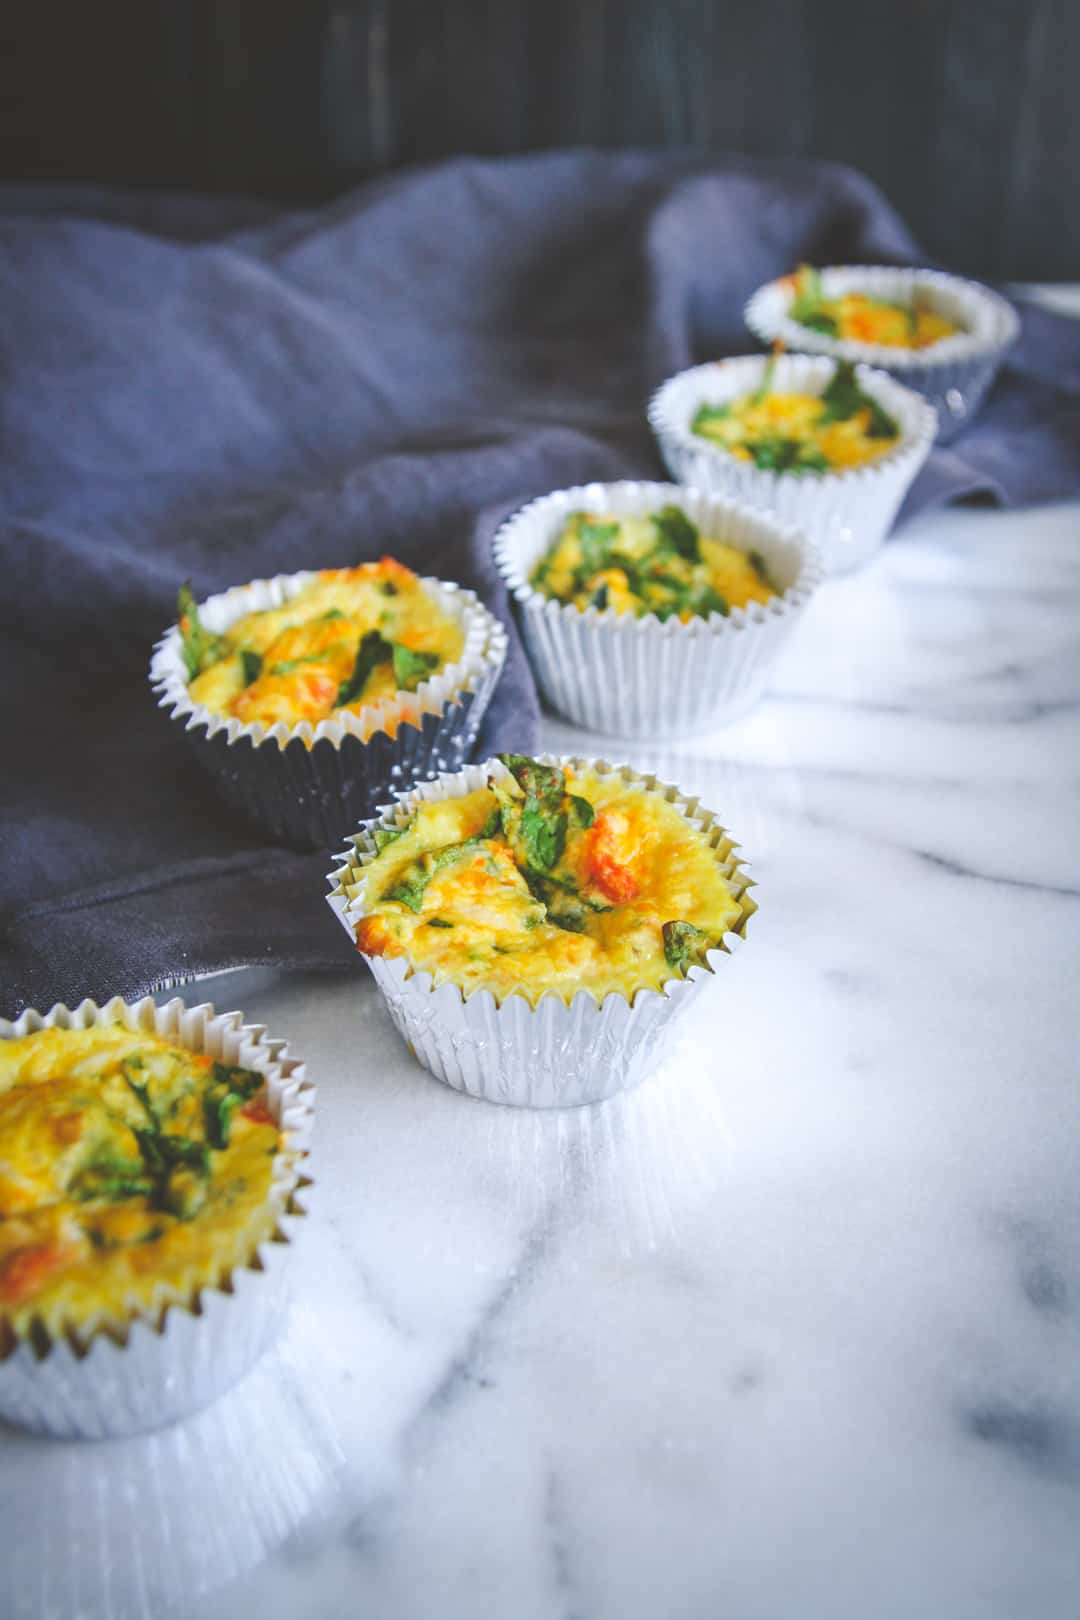 Egg cups a family breakfast recipe, family breakfast idea, baby led weaning family recipe, baby egg cups recipe